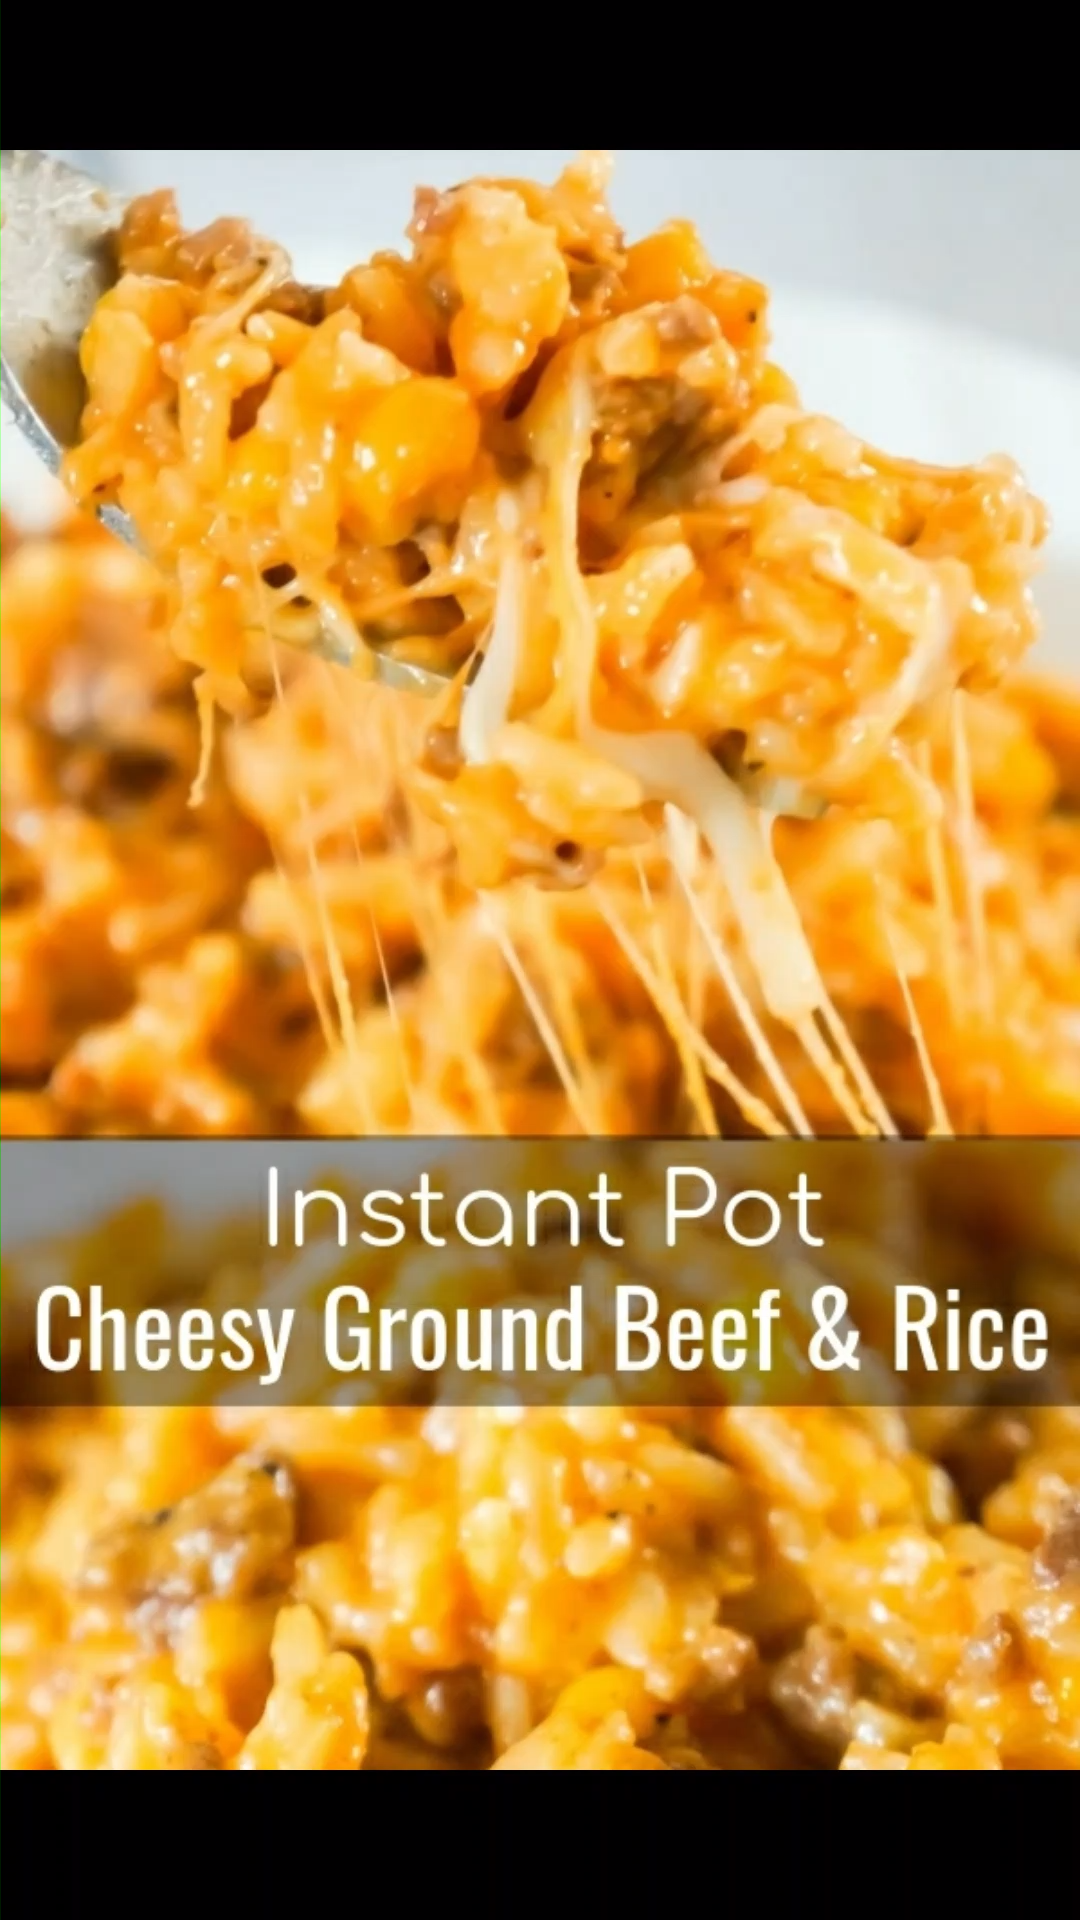 Instant Pot Cheesy Ground Beef And Rice Video Beef Recipes For Dinner Pot Recipes Easy Beef Recipes Easy